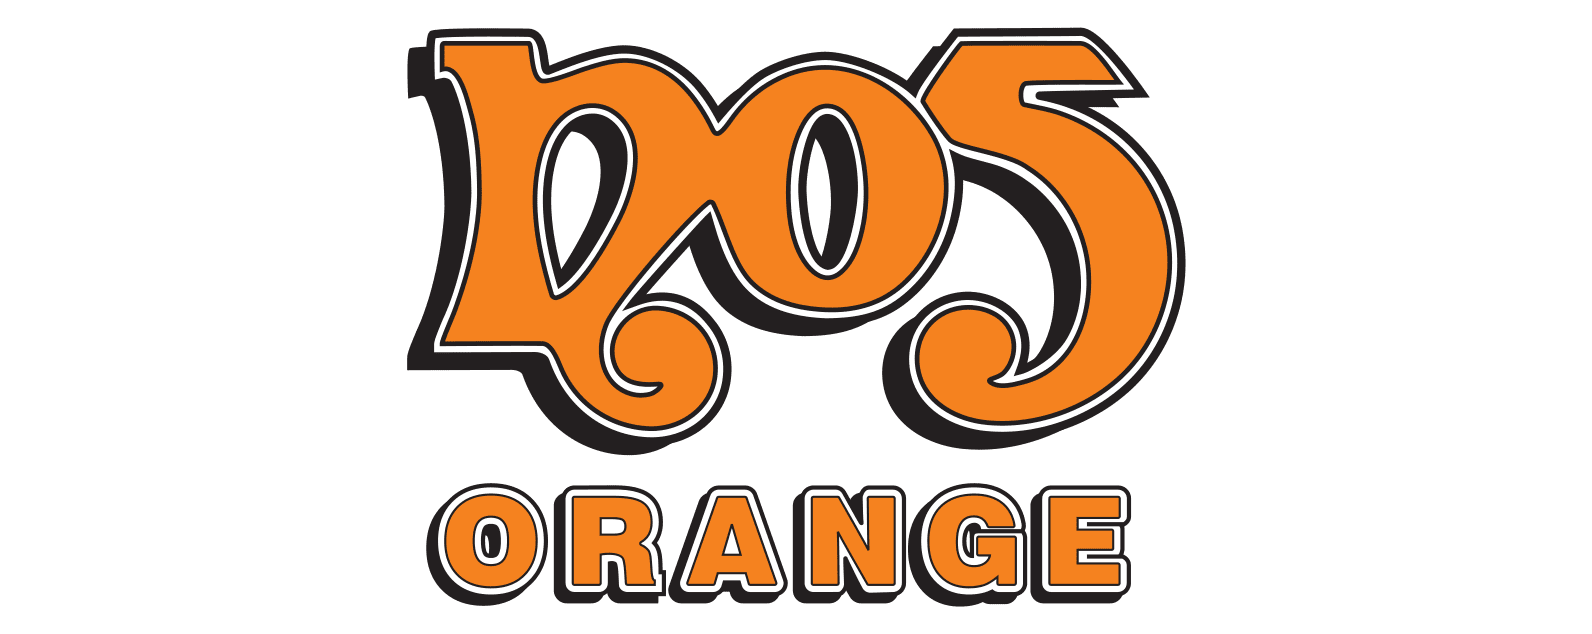 Y5 Creative Case Studies Logo No5 Orange